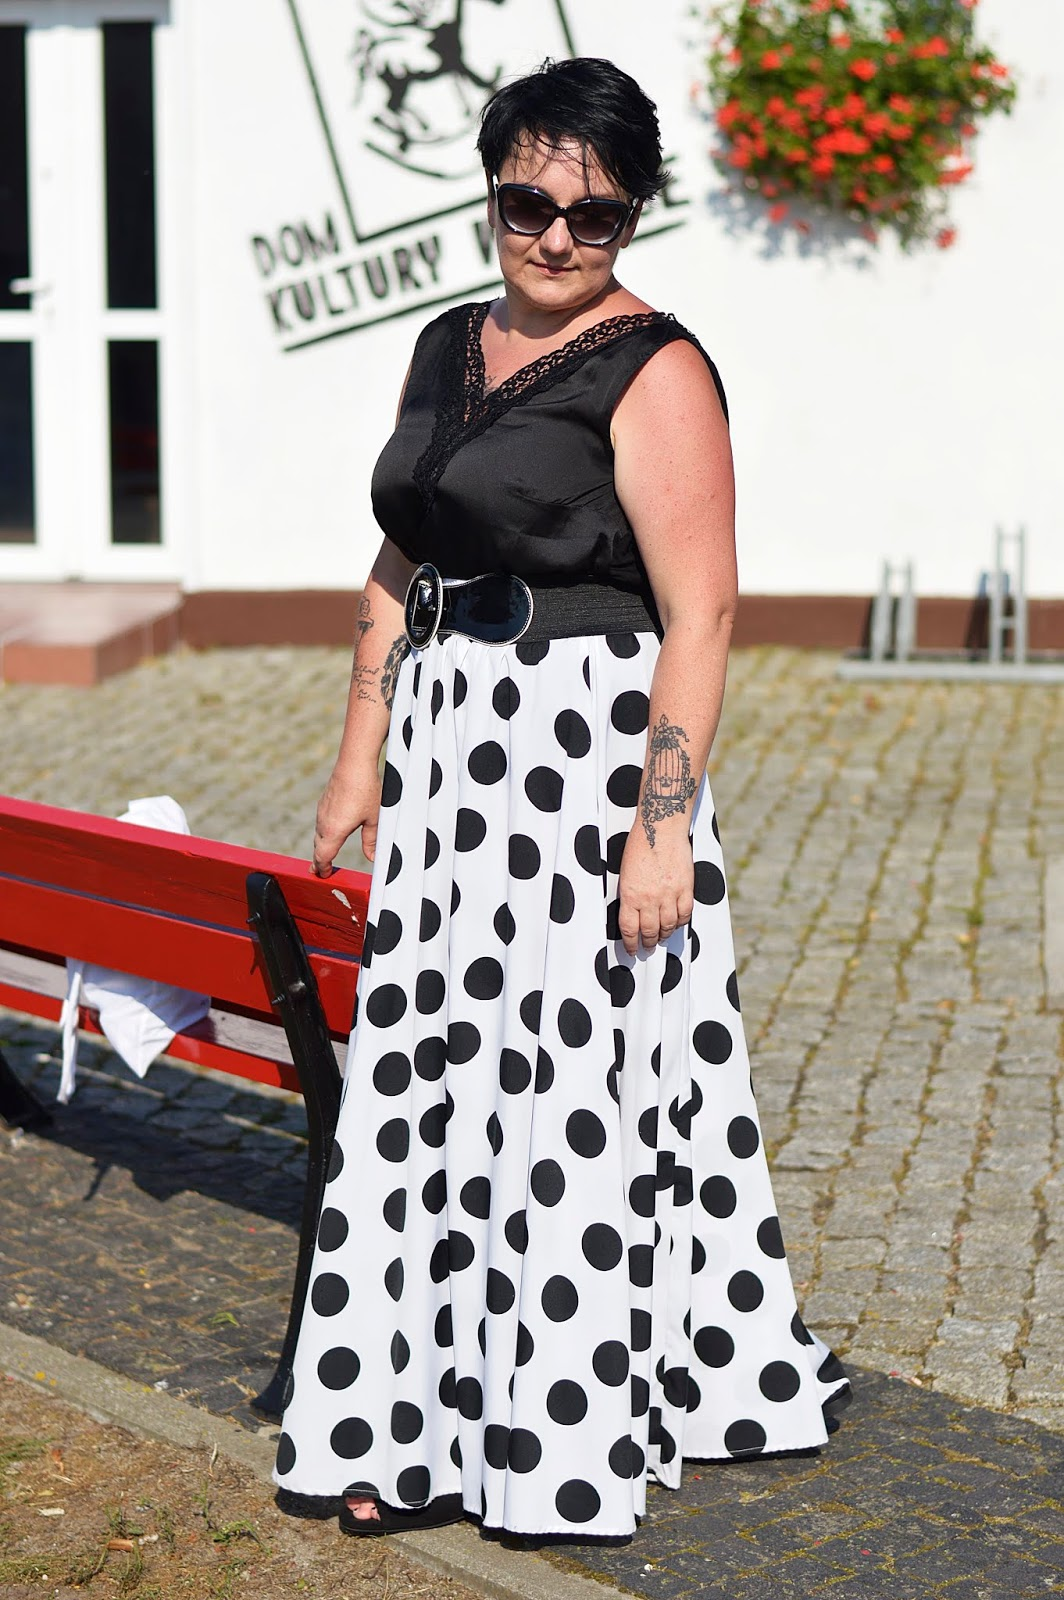 Black and white polka dots, Black and white style, Black and white world